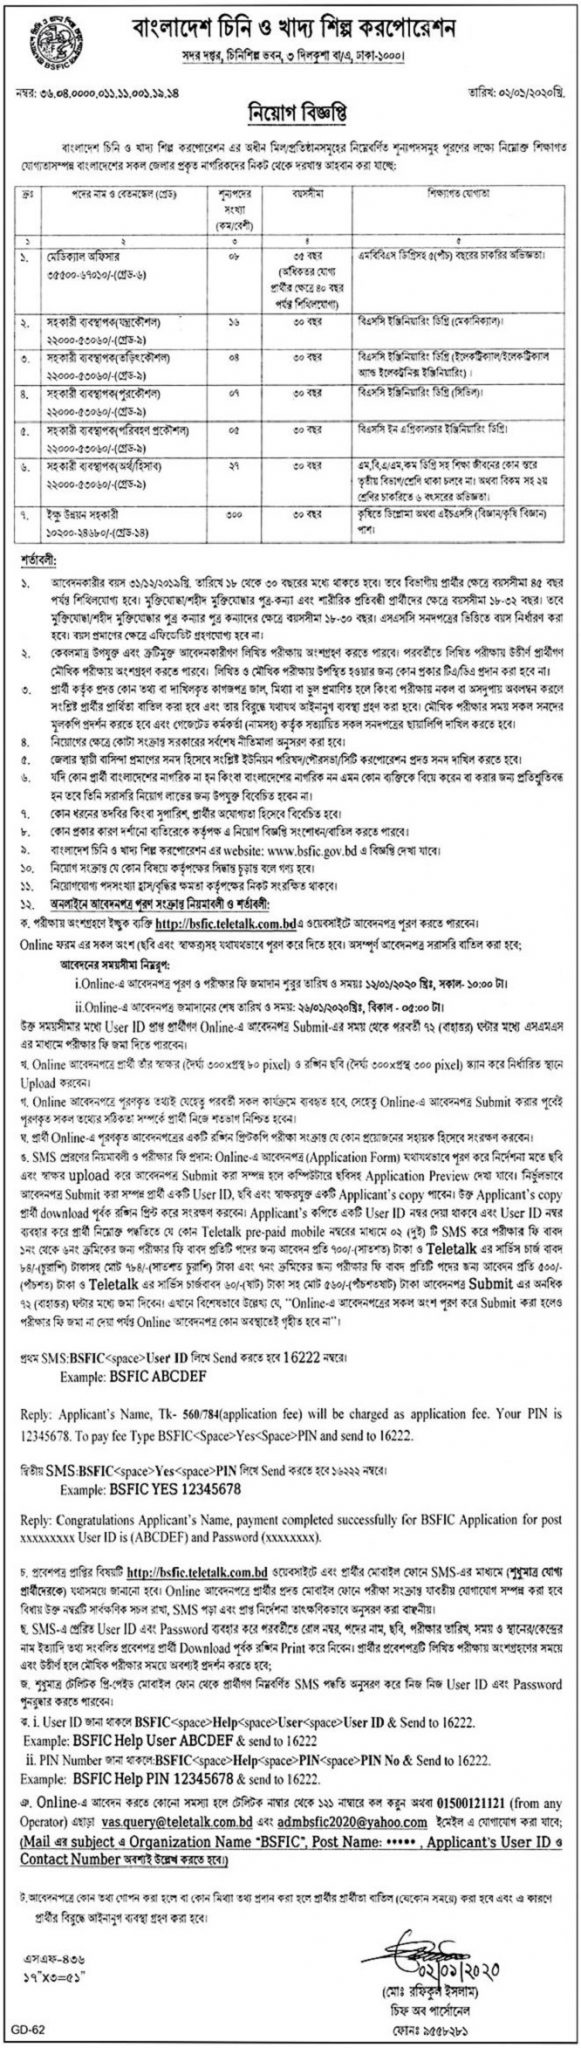 Bangladesh Sugar and Food Industry Corporation Job Circular 2020